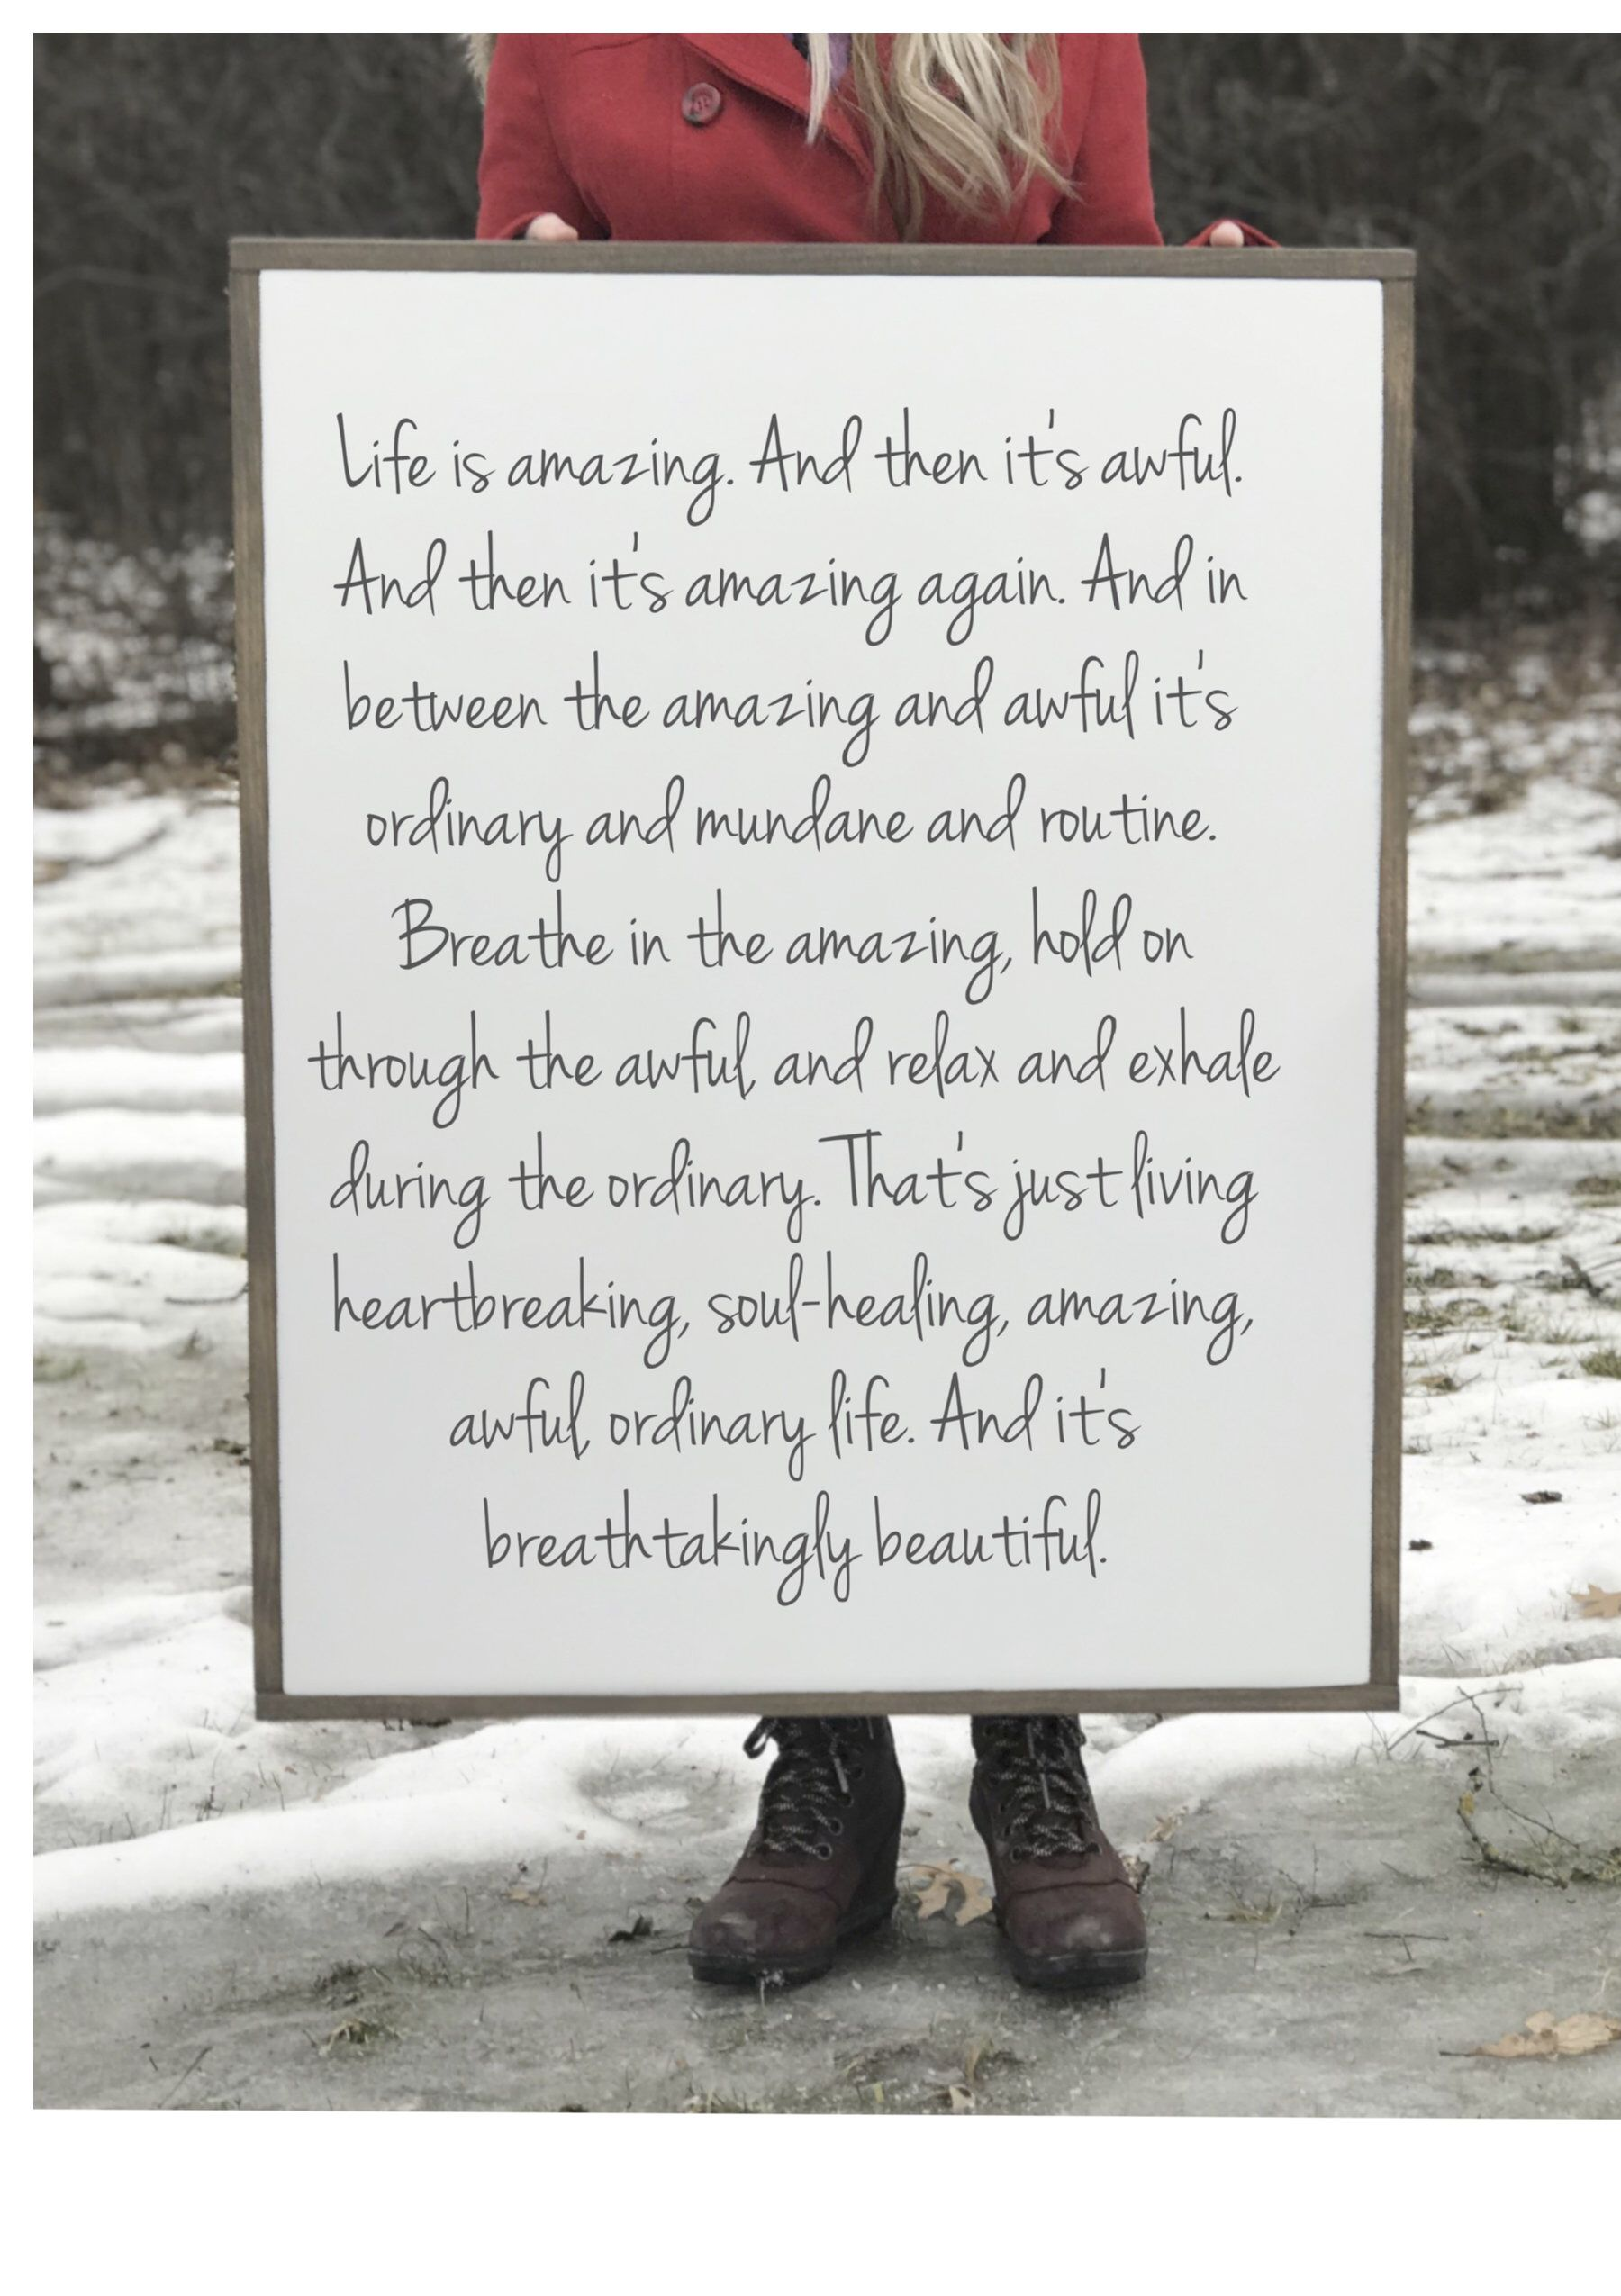 Lr Knost Quotes : knost, quotes, Amazing, Knost, Quote, Inspirational, Quote,, Quotes, About, Motherhood,